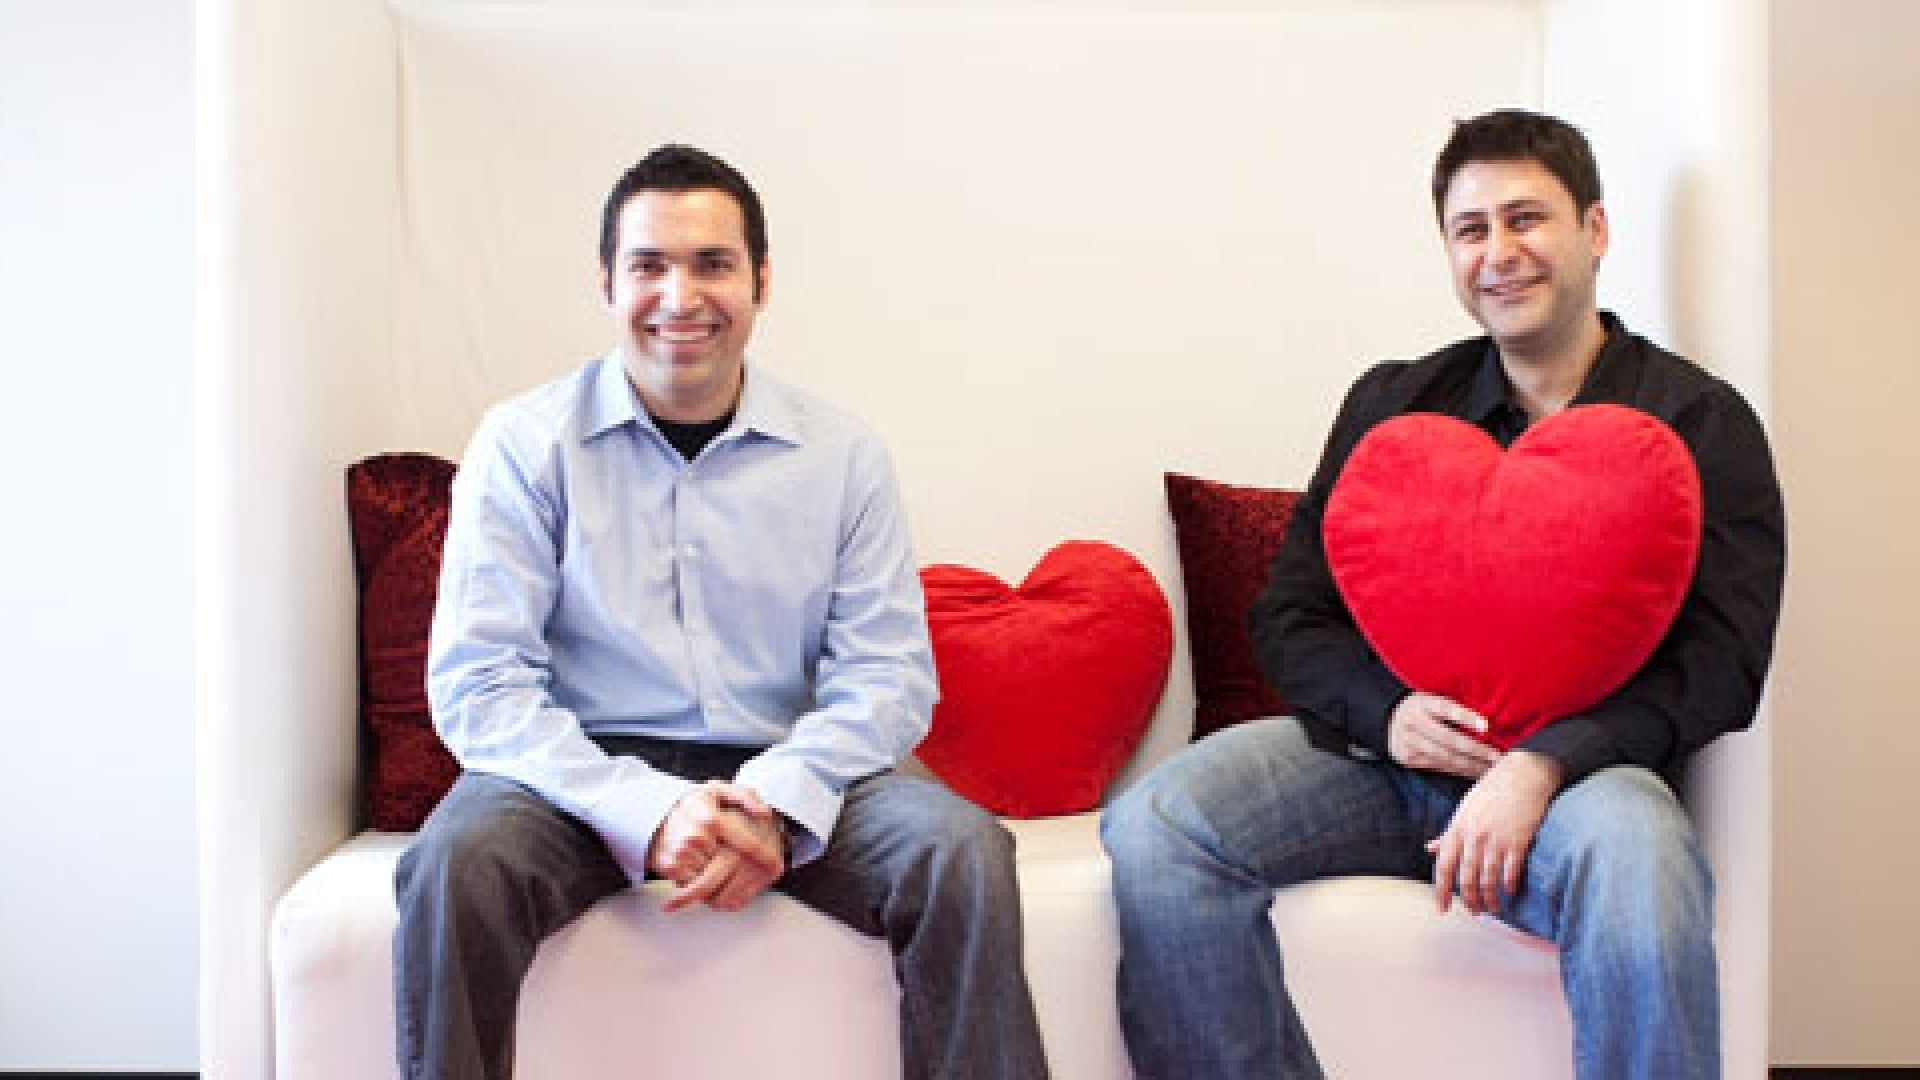 Alex Mehr and Shayan Zadeh, founders of Zoosk, were born in Iran but moved to the United States to start their company.